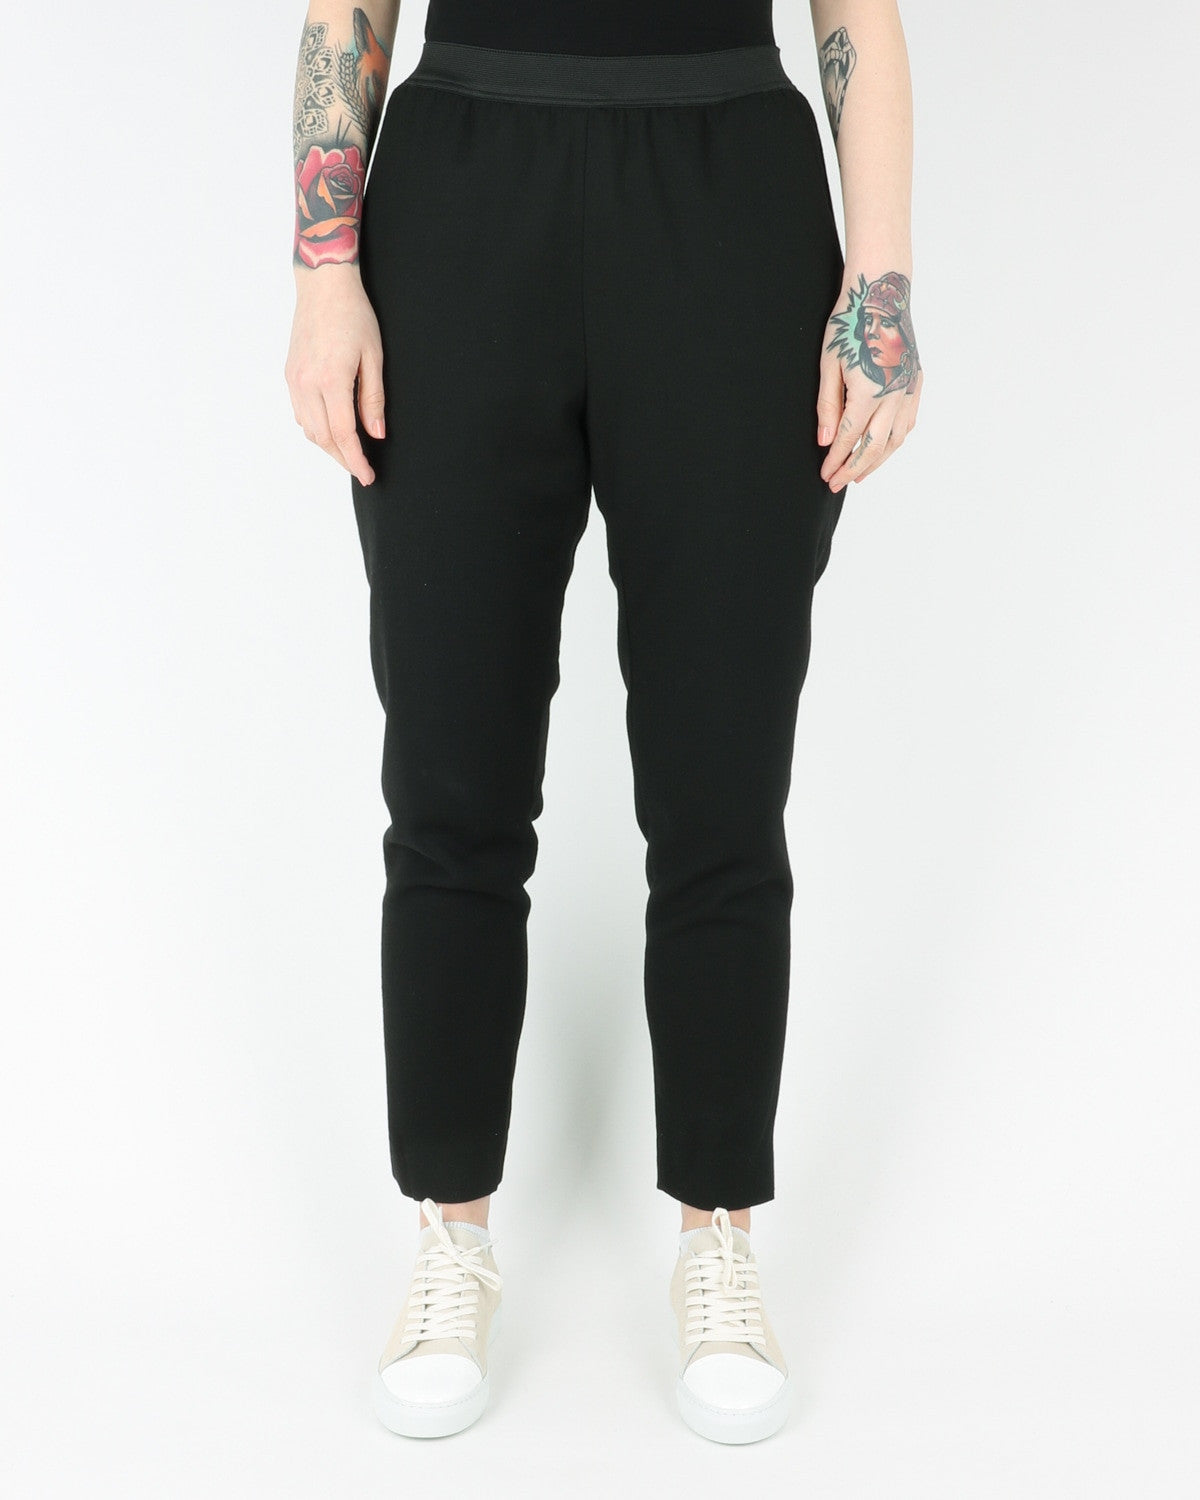 whyred_blue el wool lining pants_black_view_1_2